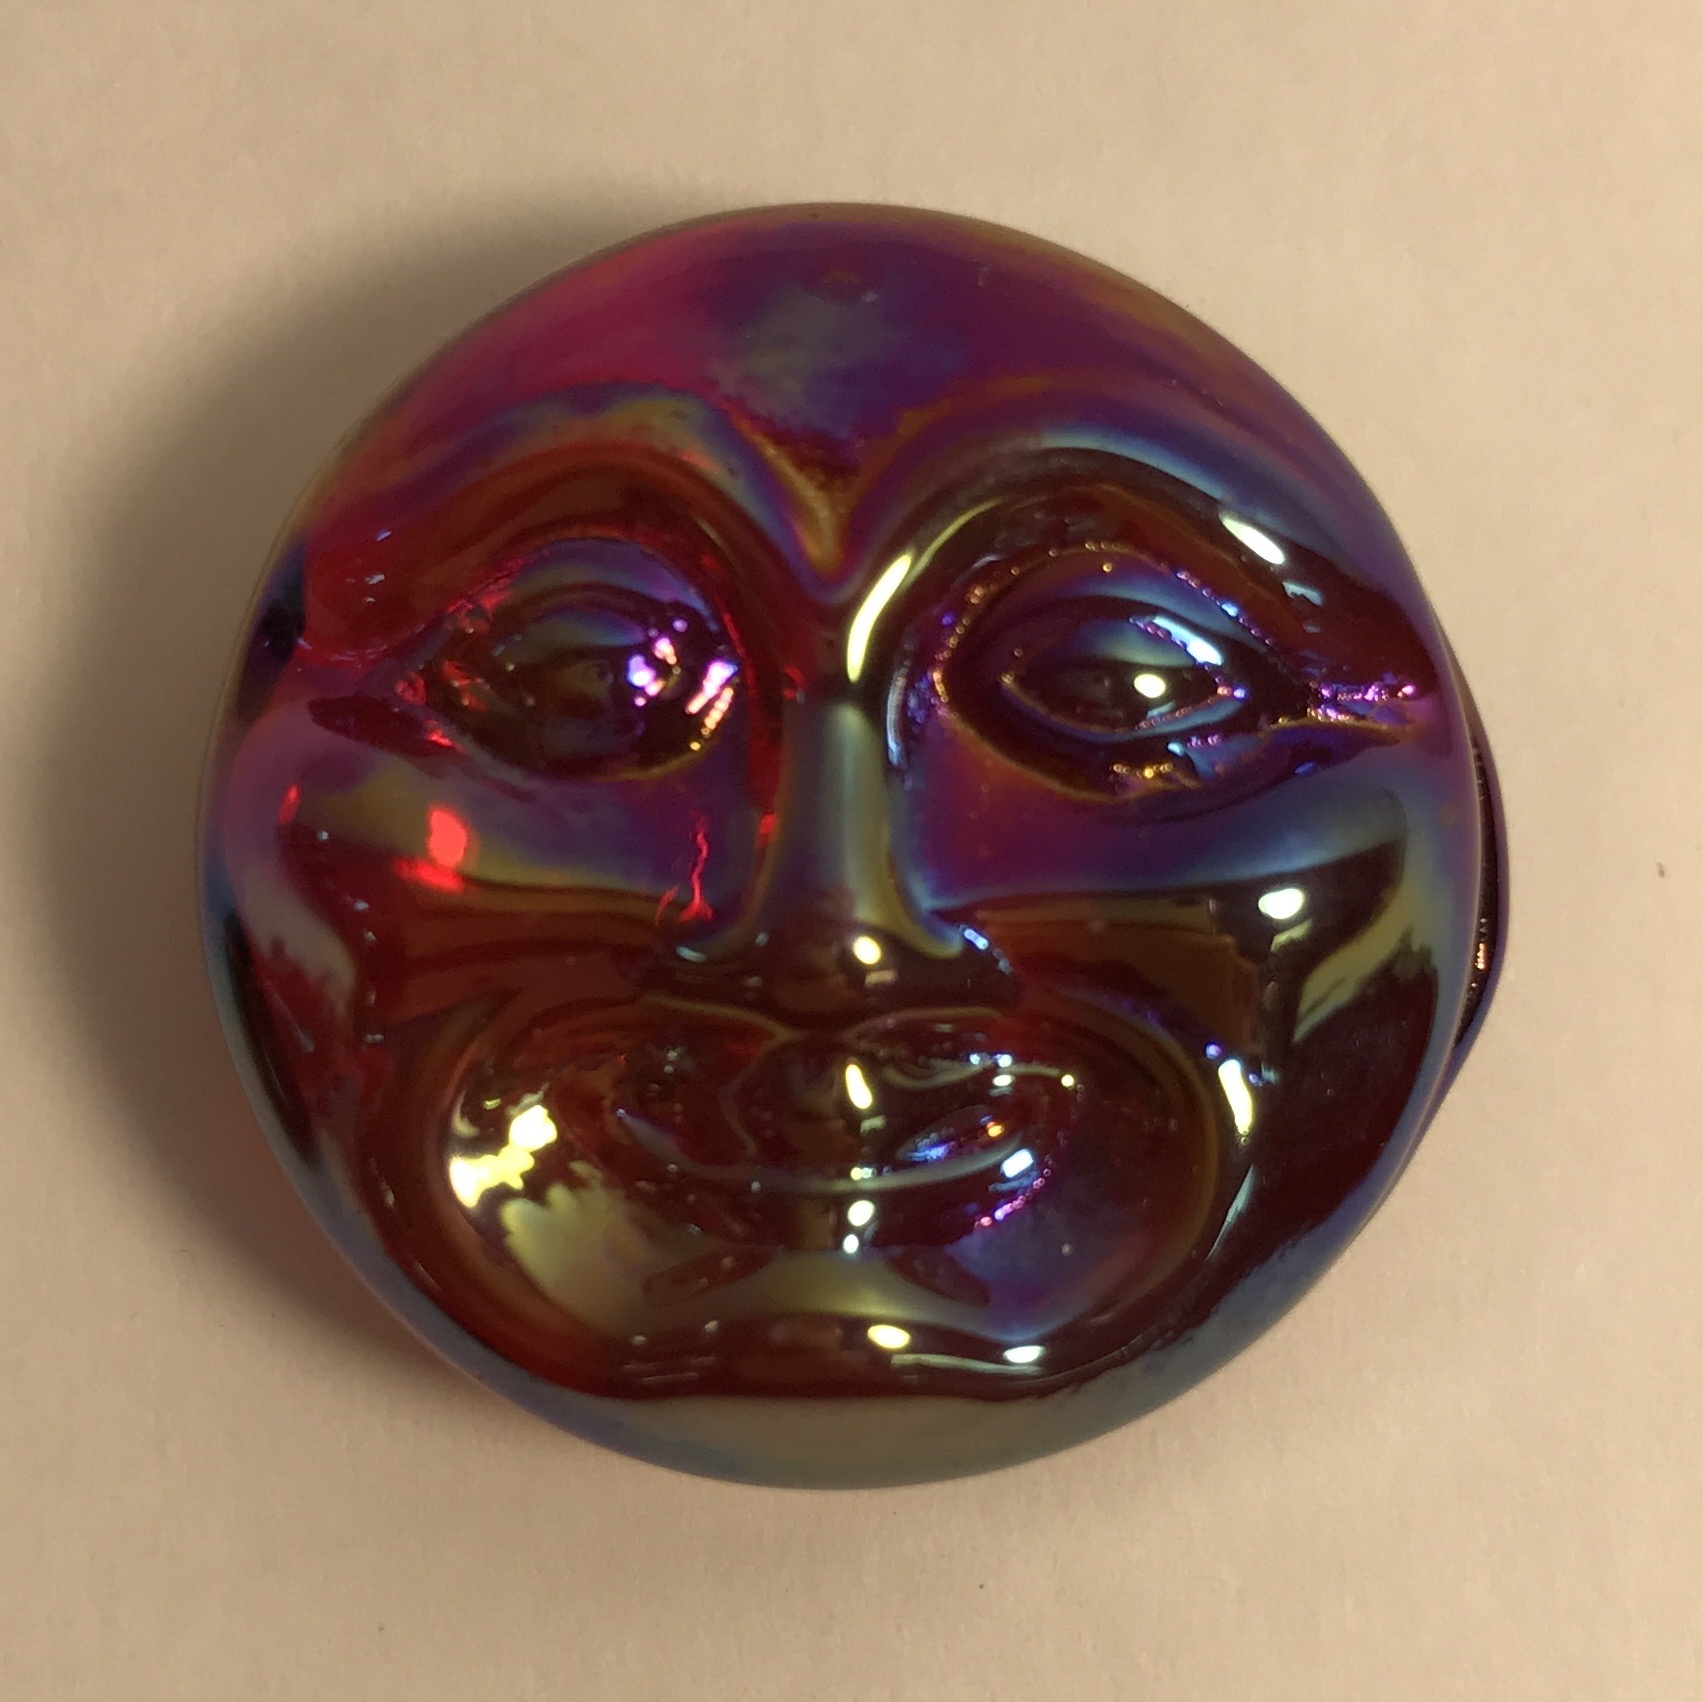 Red irridized glass moon face